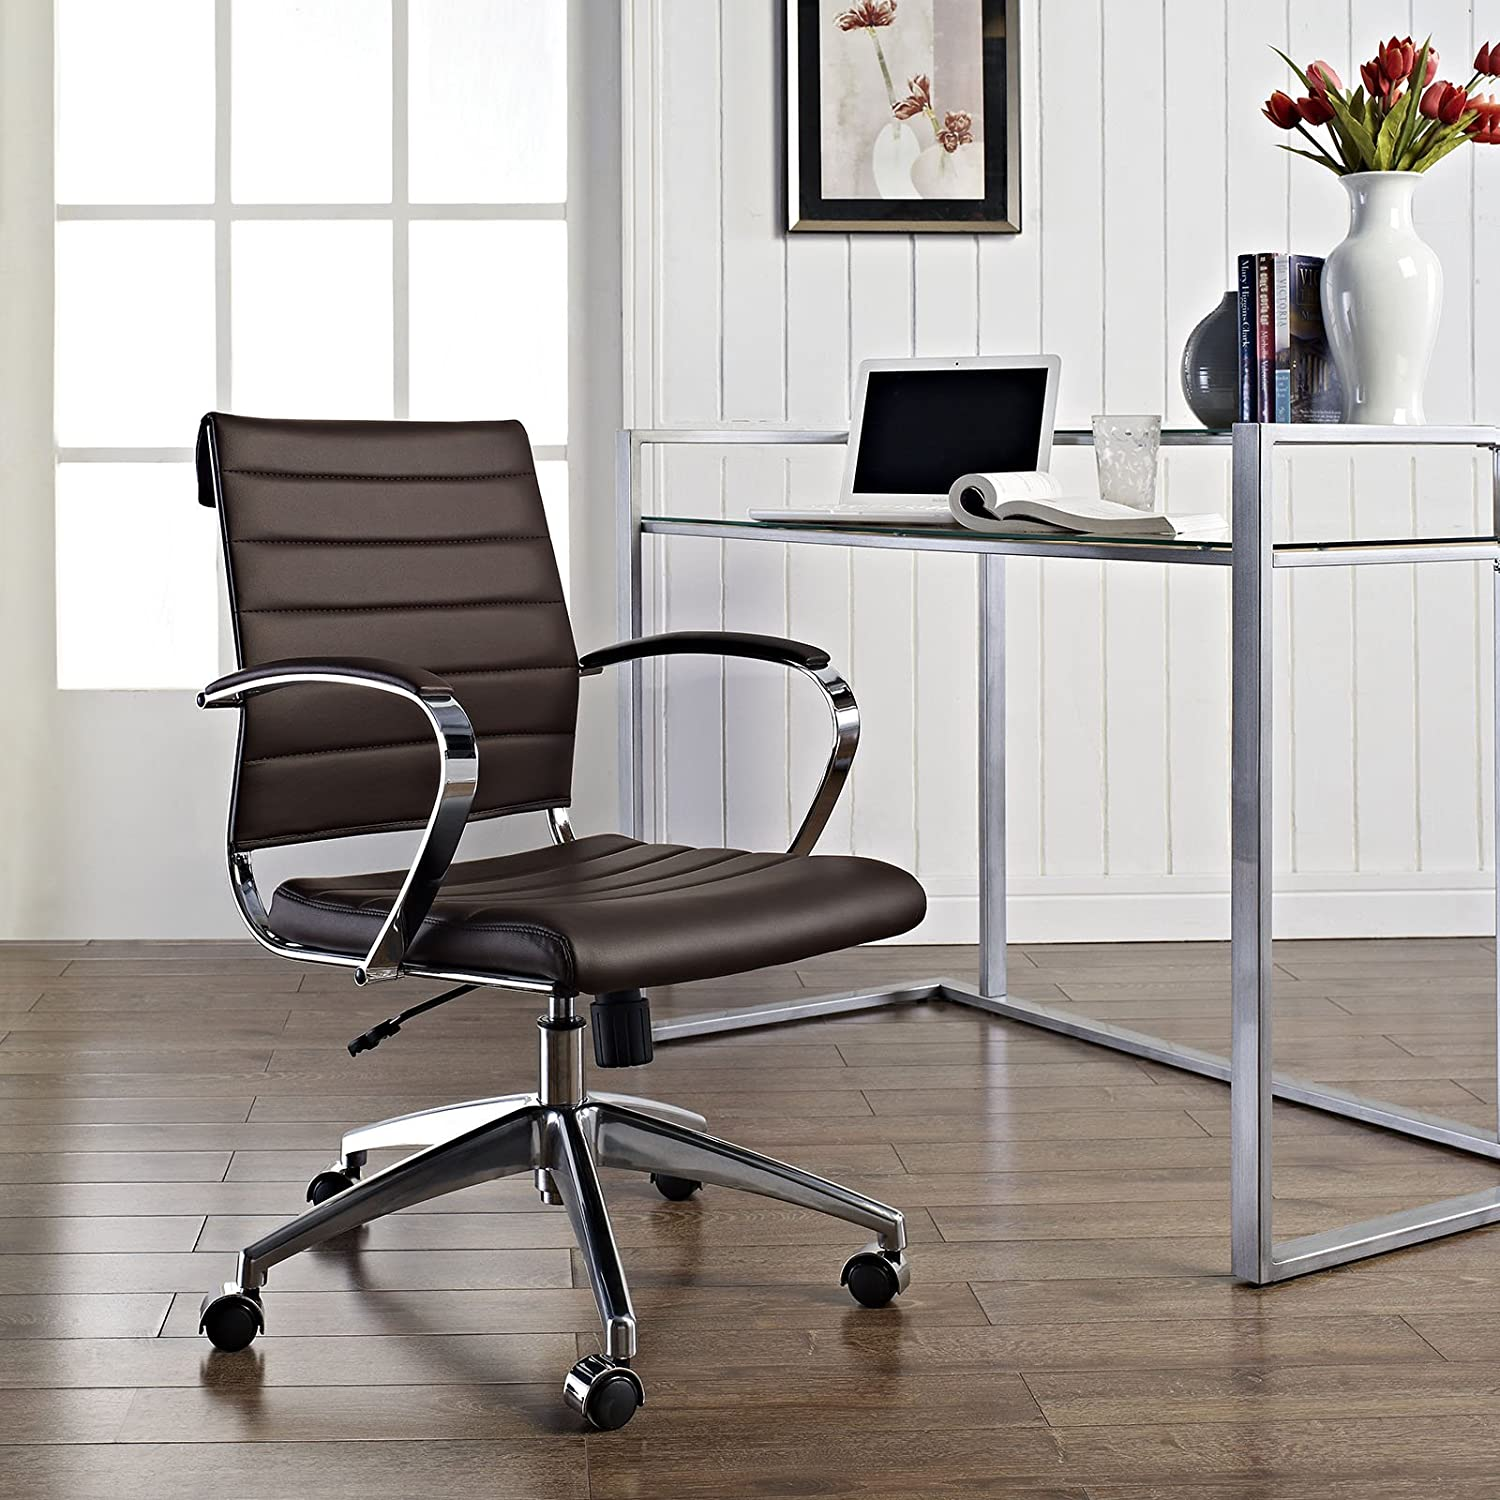 Modway Jive Ribbed Mid Back Computer Desk Swivel Office Chair In Brown